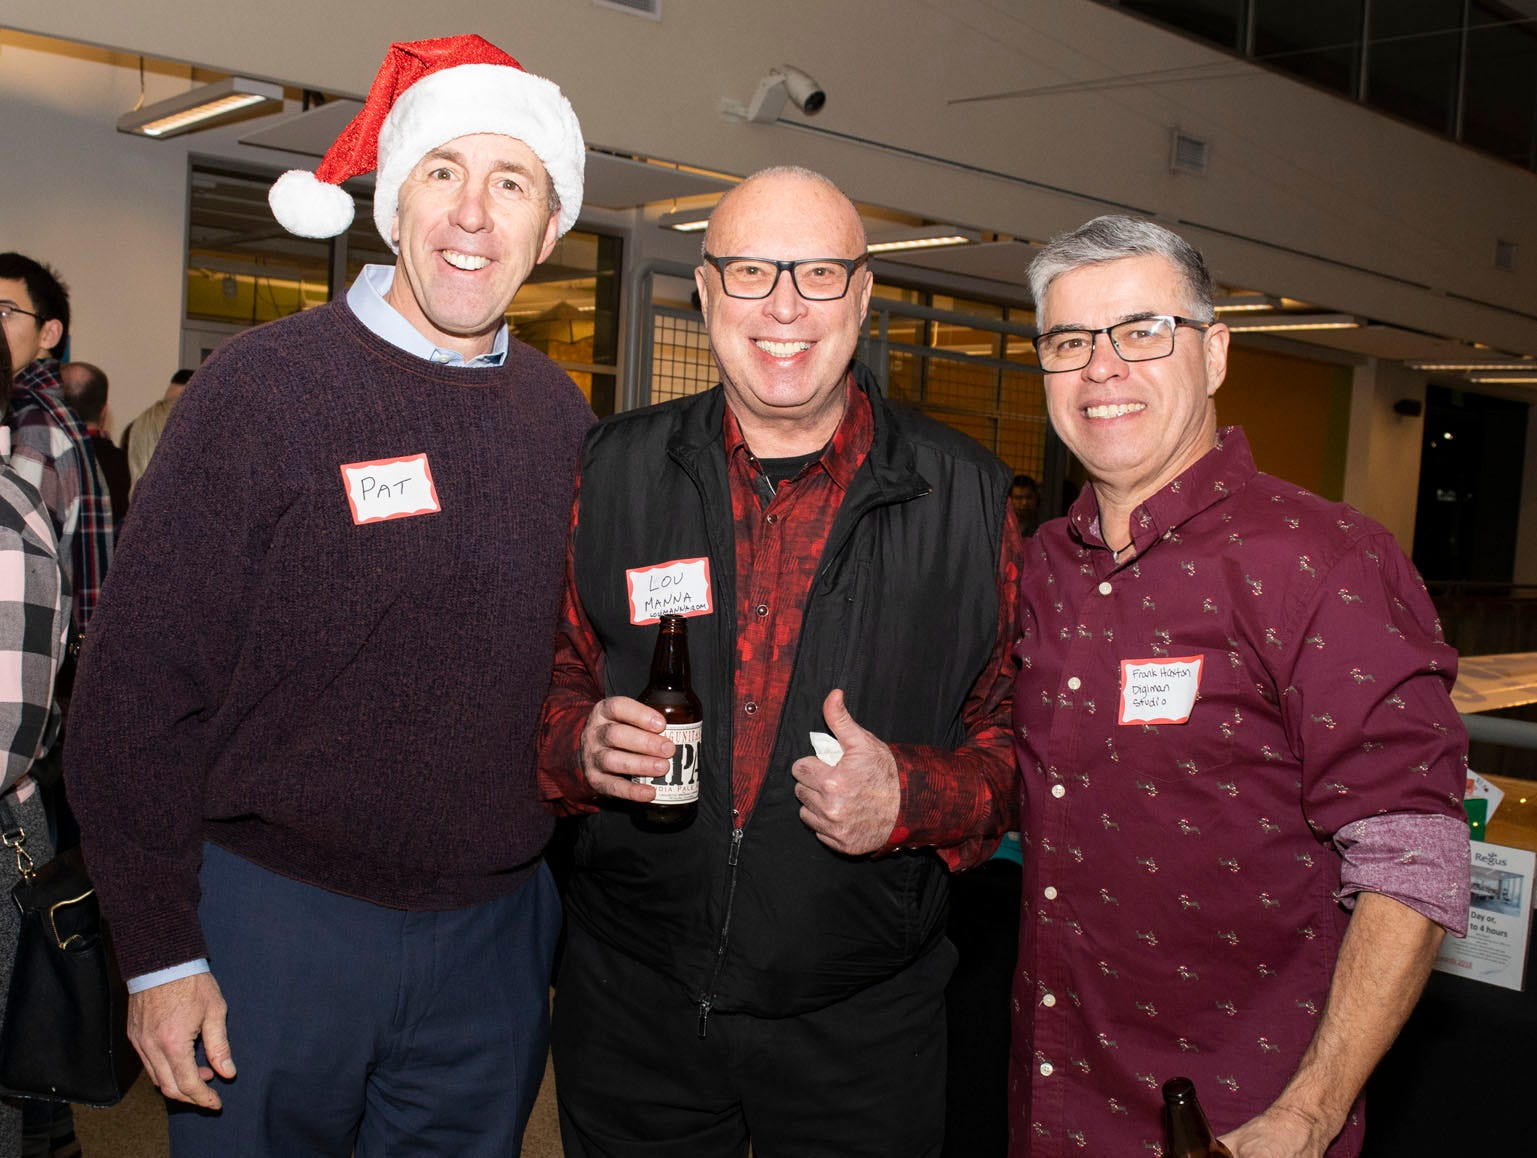 Guests attend Mingle Bells 2018 at the Discovery Museum on Thursday, Dec. 6, 2018. Reno, Nev.